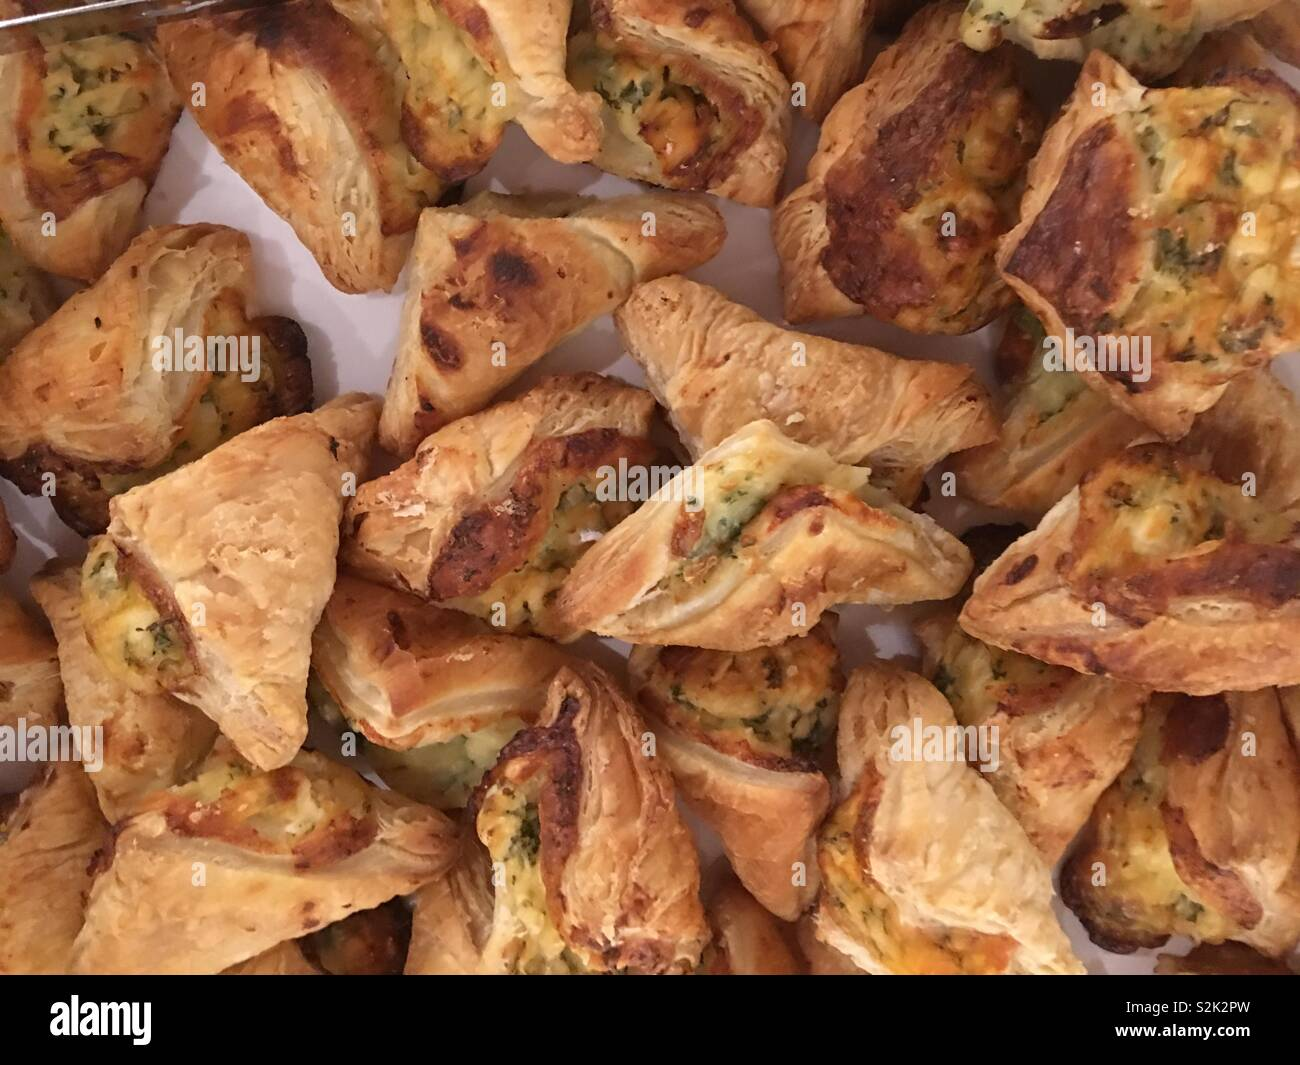 Plate of savory pastries, views closeup from above - Stock Image